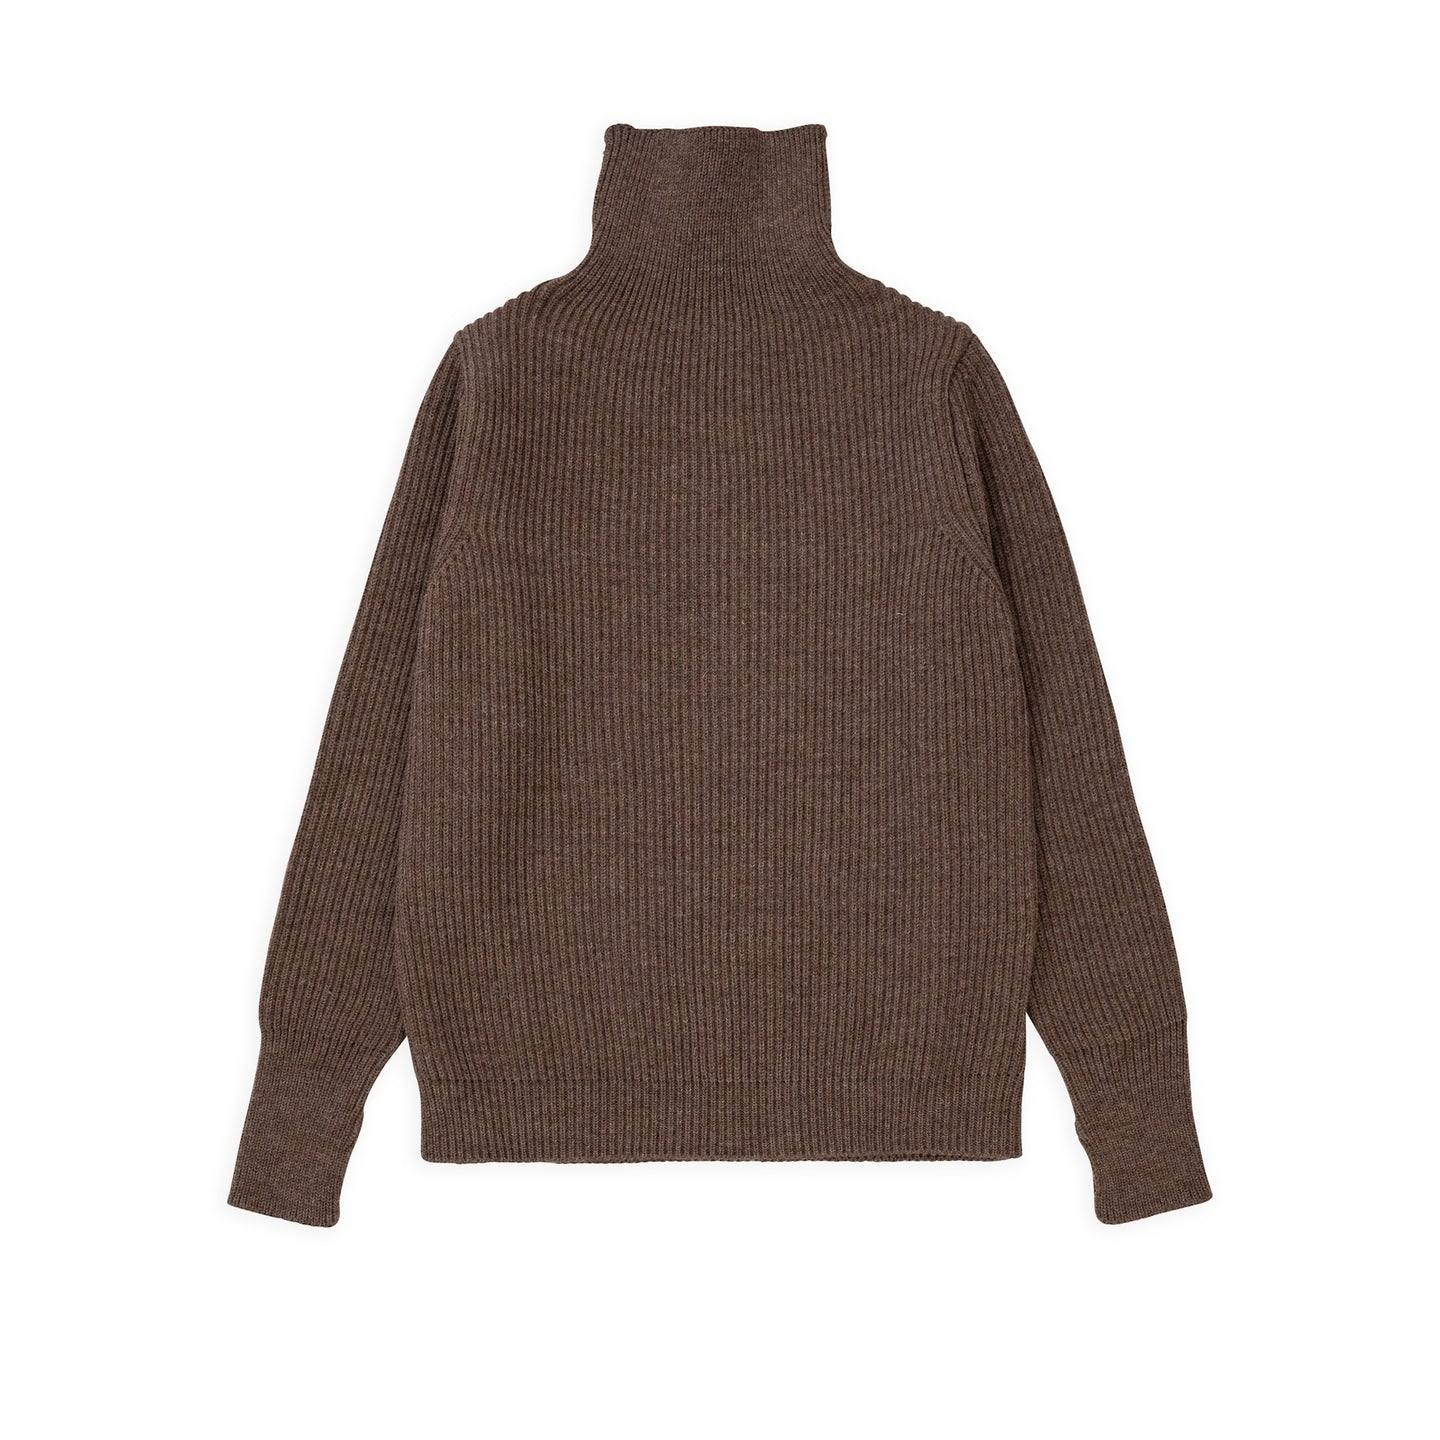 ANDERSEN-ANDERSEN Navy Turtleneck - Natural taupe